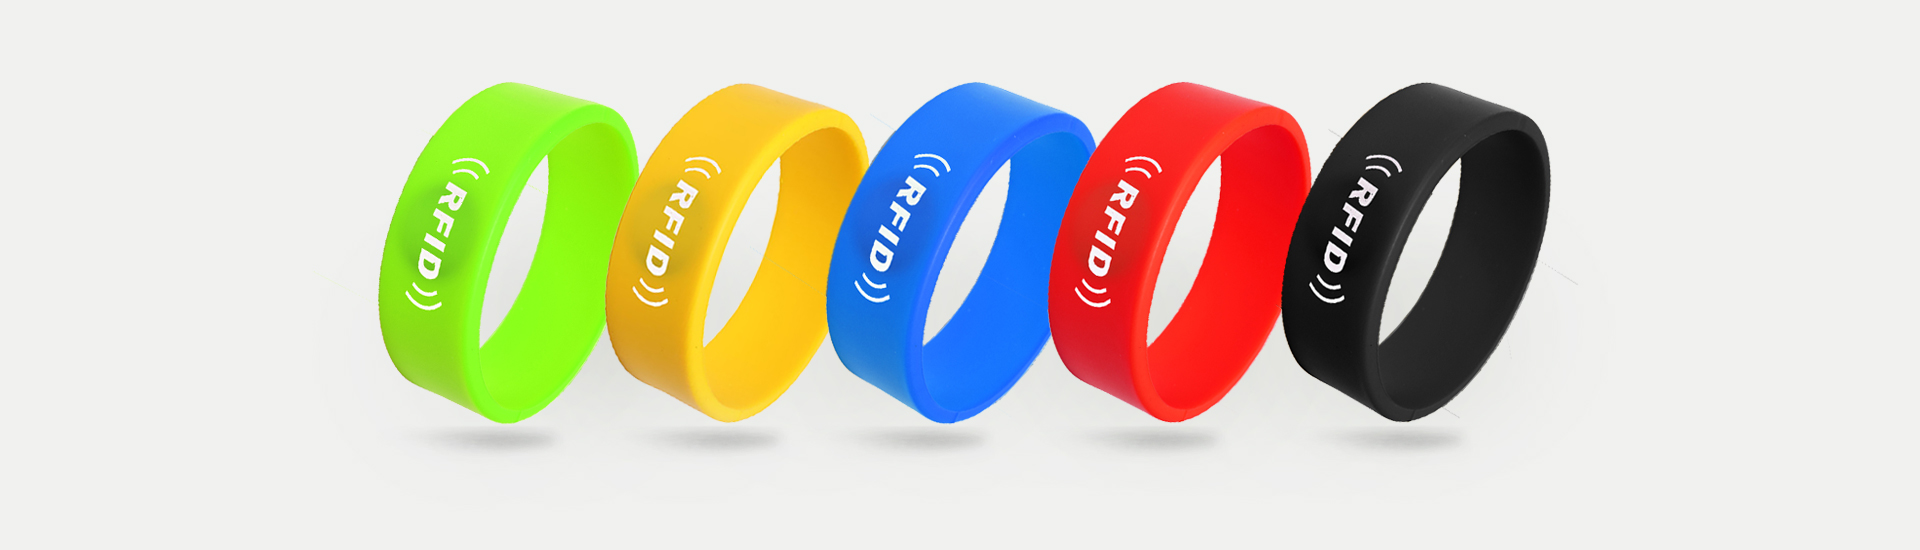 wristband ultralight chip with shipping aliexpress com bracelet rfid smart adjustable free buy from product silicone w nfc tag store r